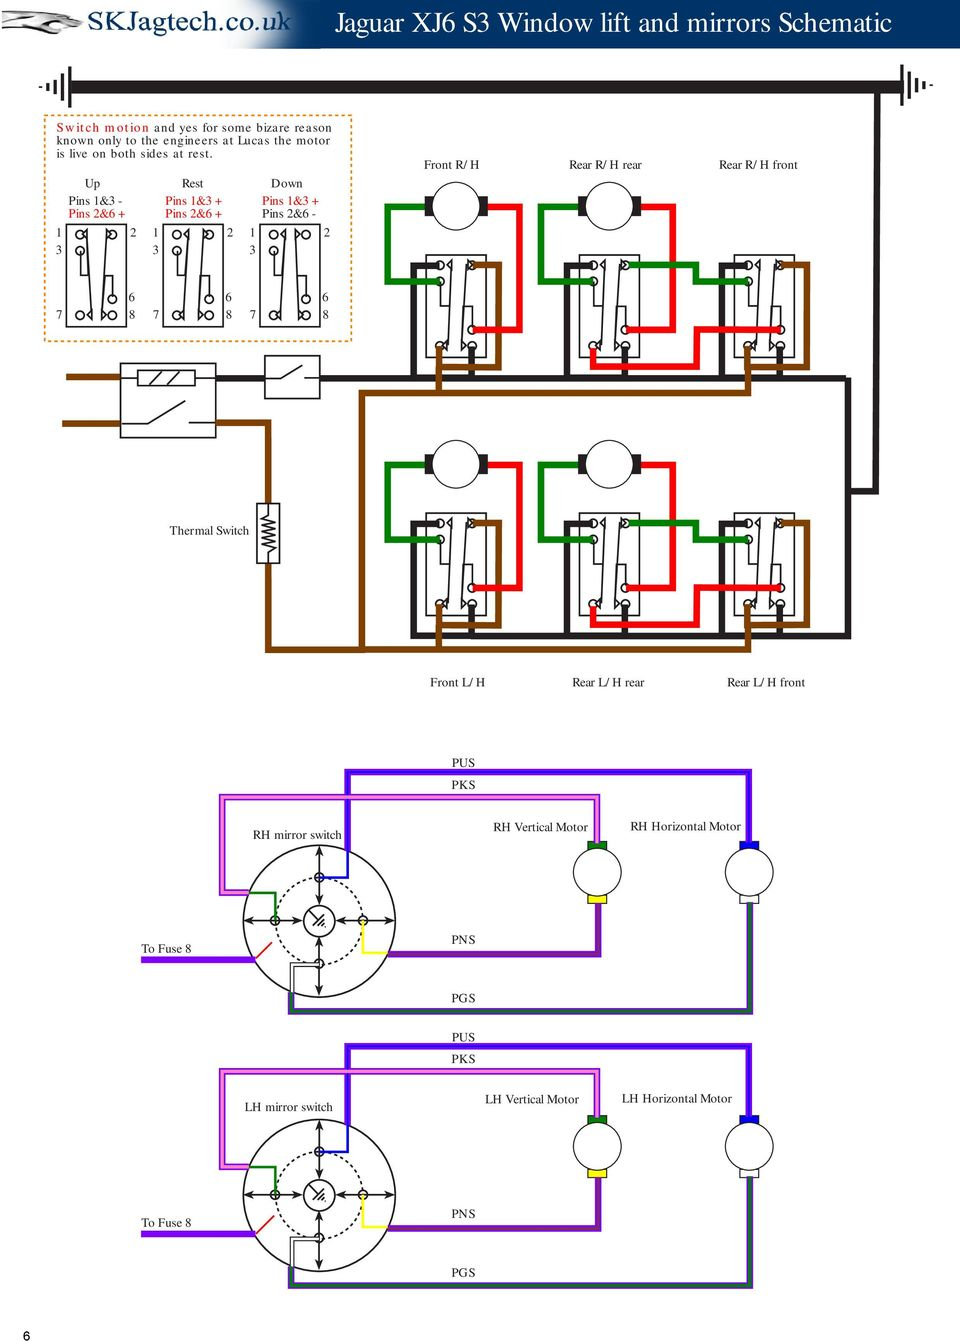 Jaguar Xj6 Series 2 Wiring Diagram Libraries Fender 3 Diagrams Scematicjaguar Simple Schema